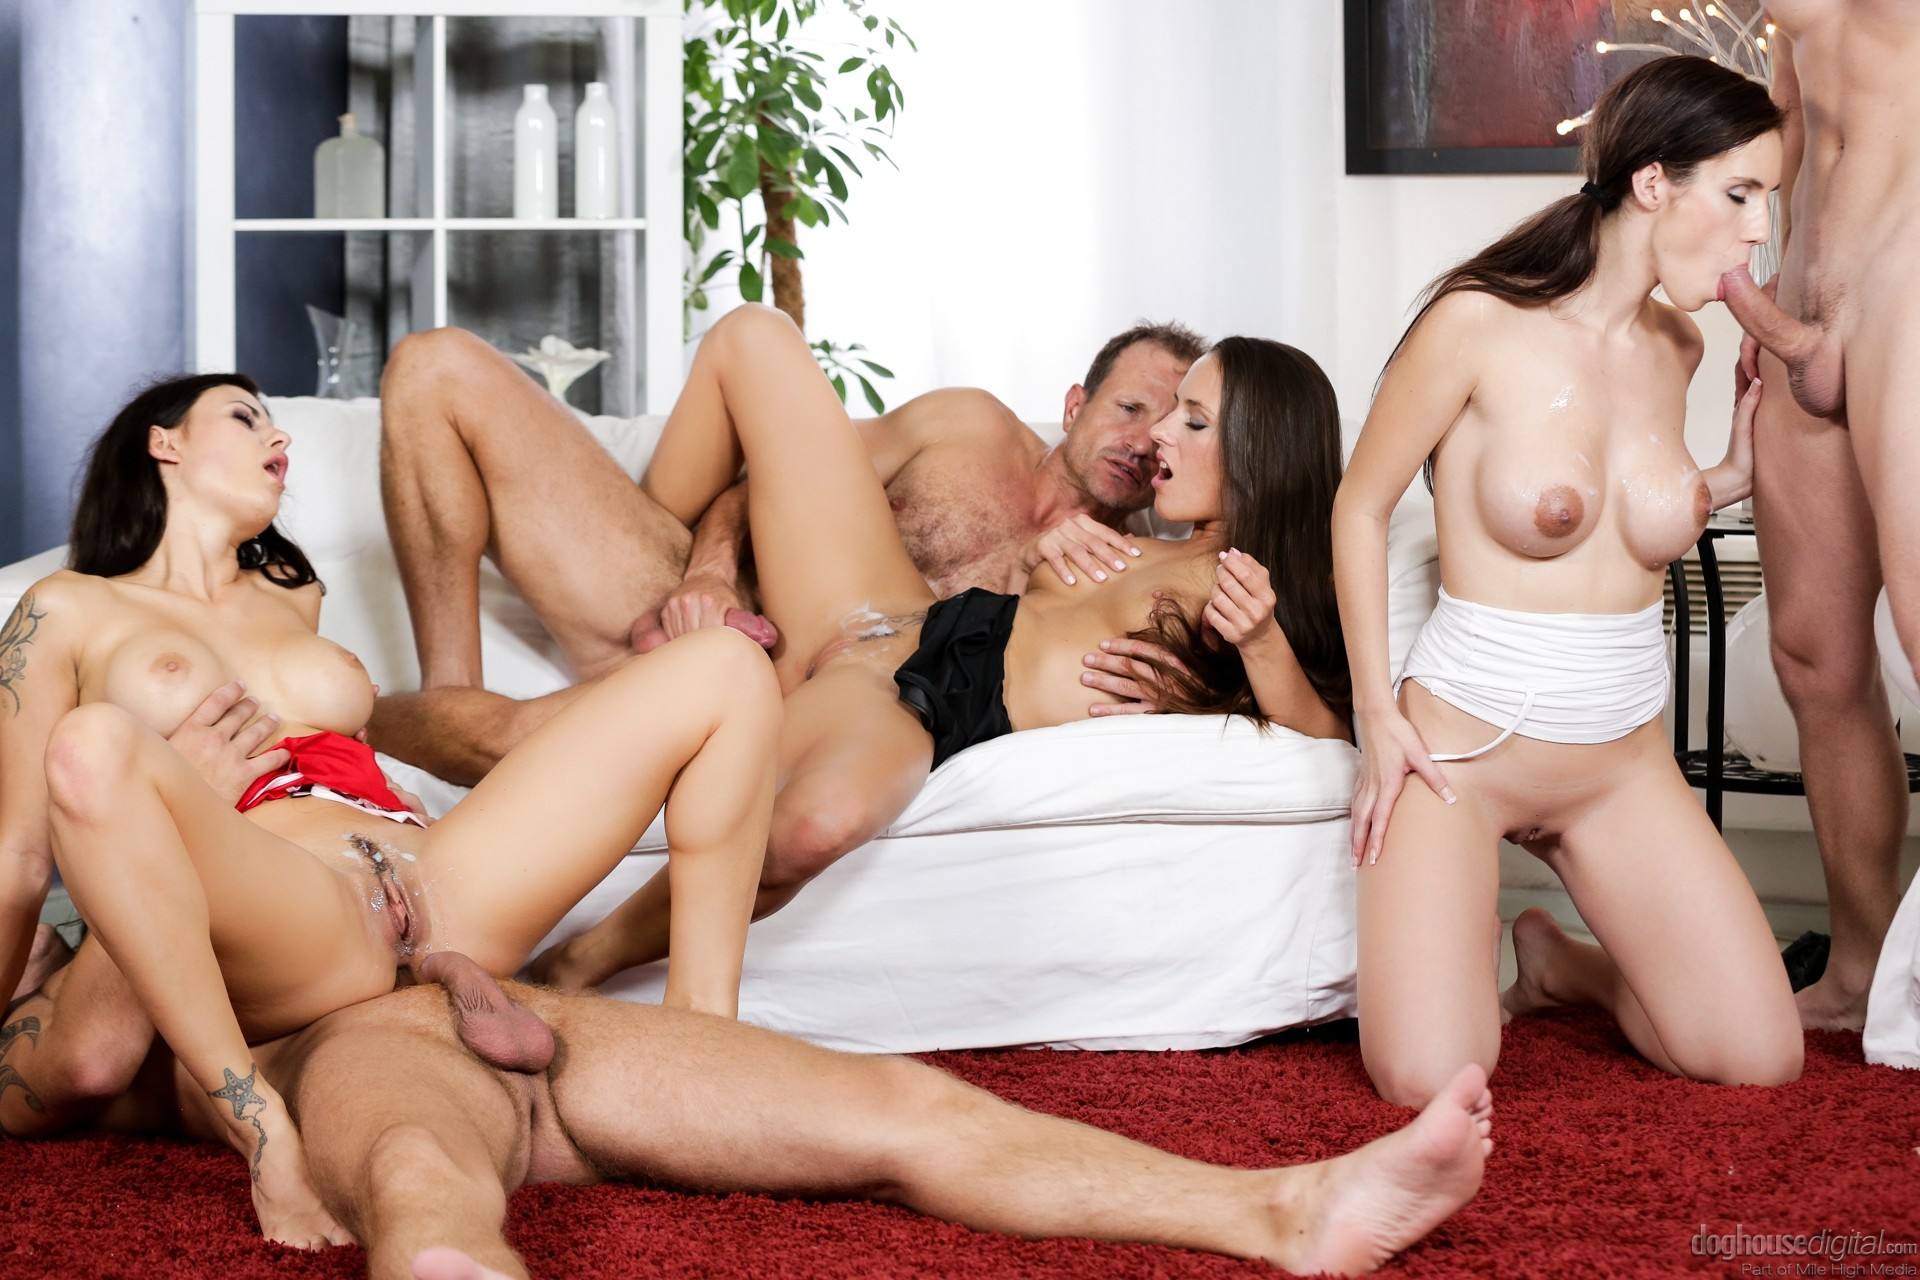 foursome-orgy-swinger-sex-free-sexy-girls-naked-and-feet